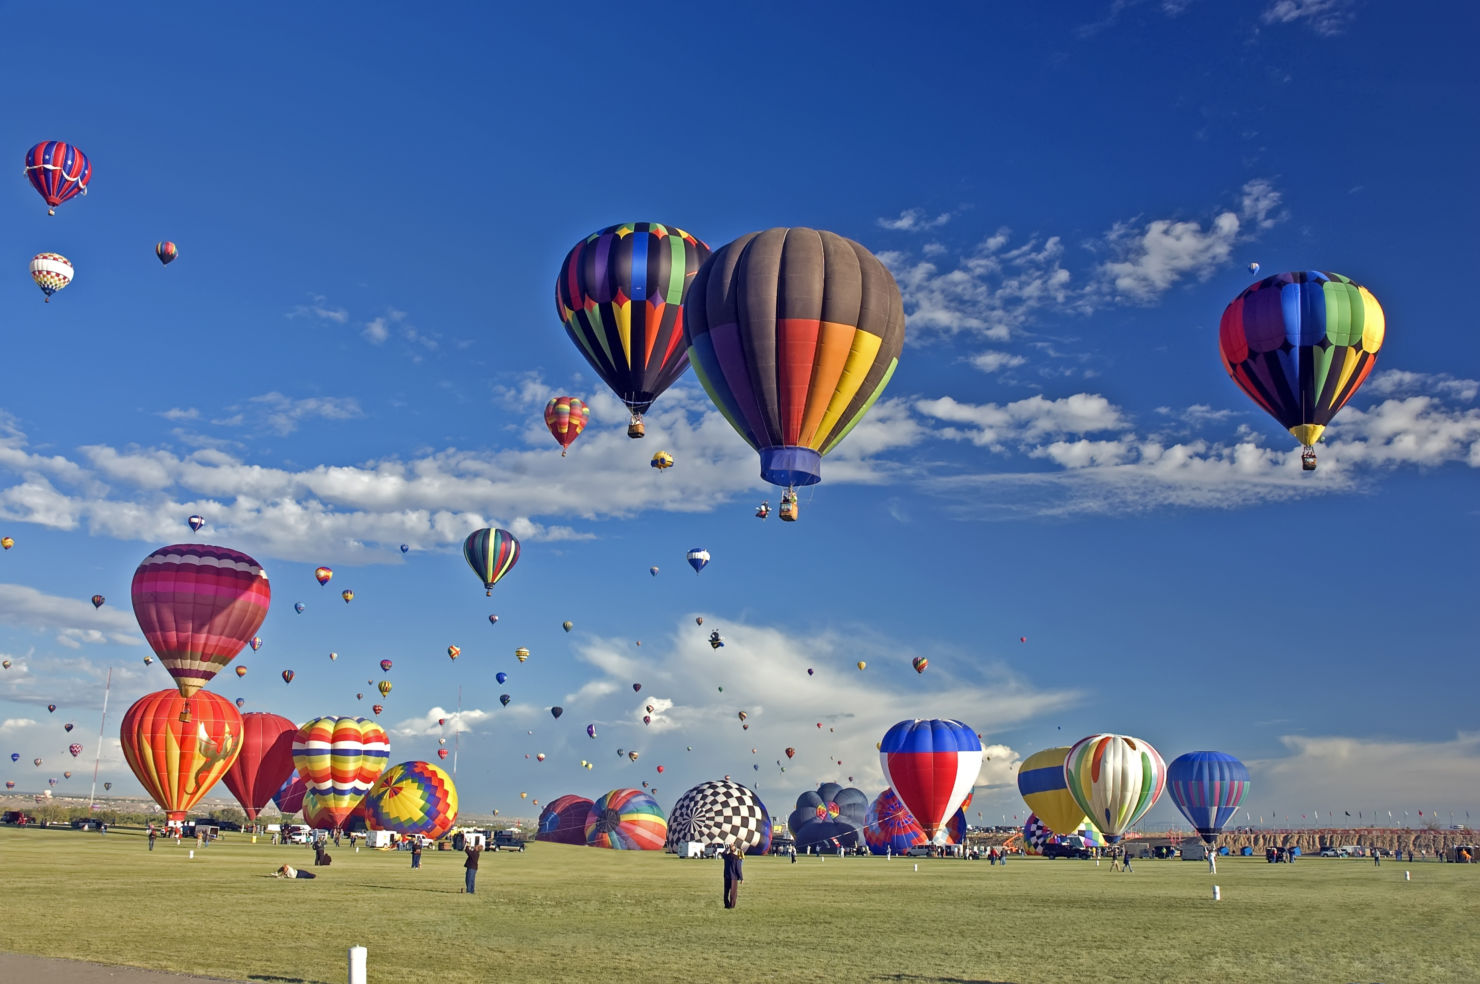 Bucket-List_Albuquerque_hot-air-balloons_fiesta